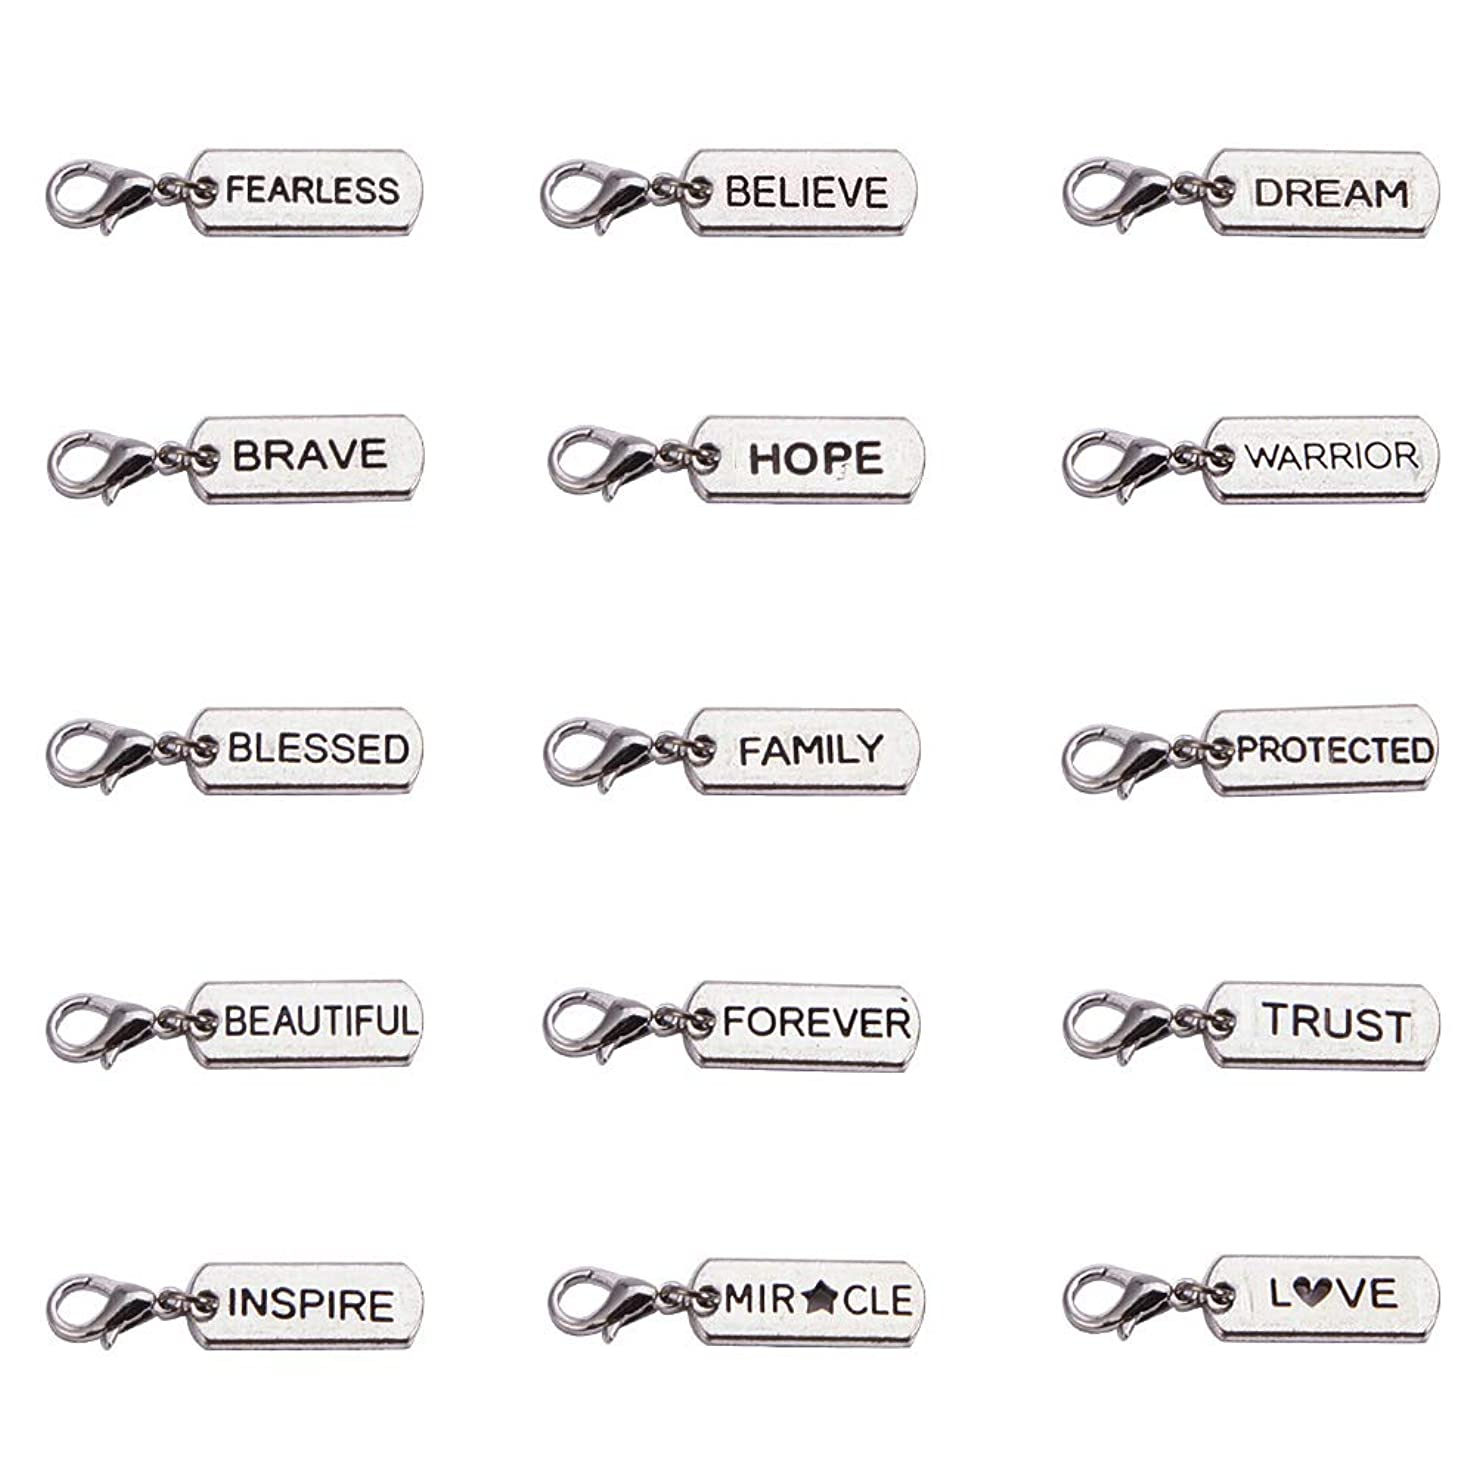 PH PandaHall 30PCS 15 Styles Antique Silver Inspirational Message Charms Pendants Words Beads Charms for Jewelry Making DIY Necklaces & Bracelets